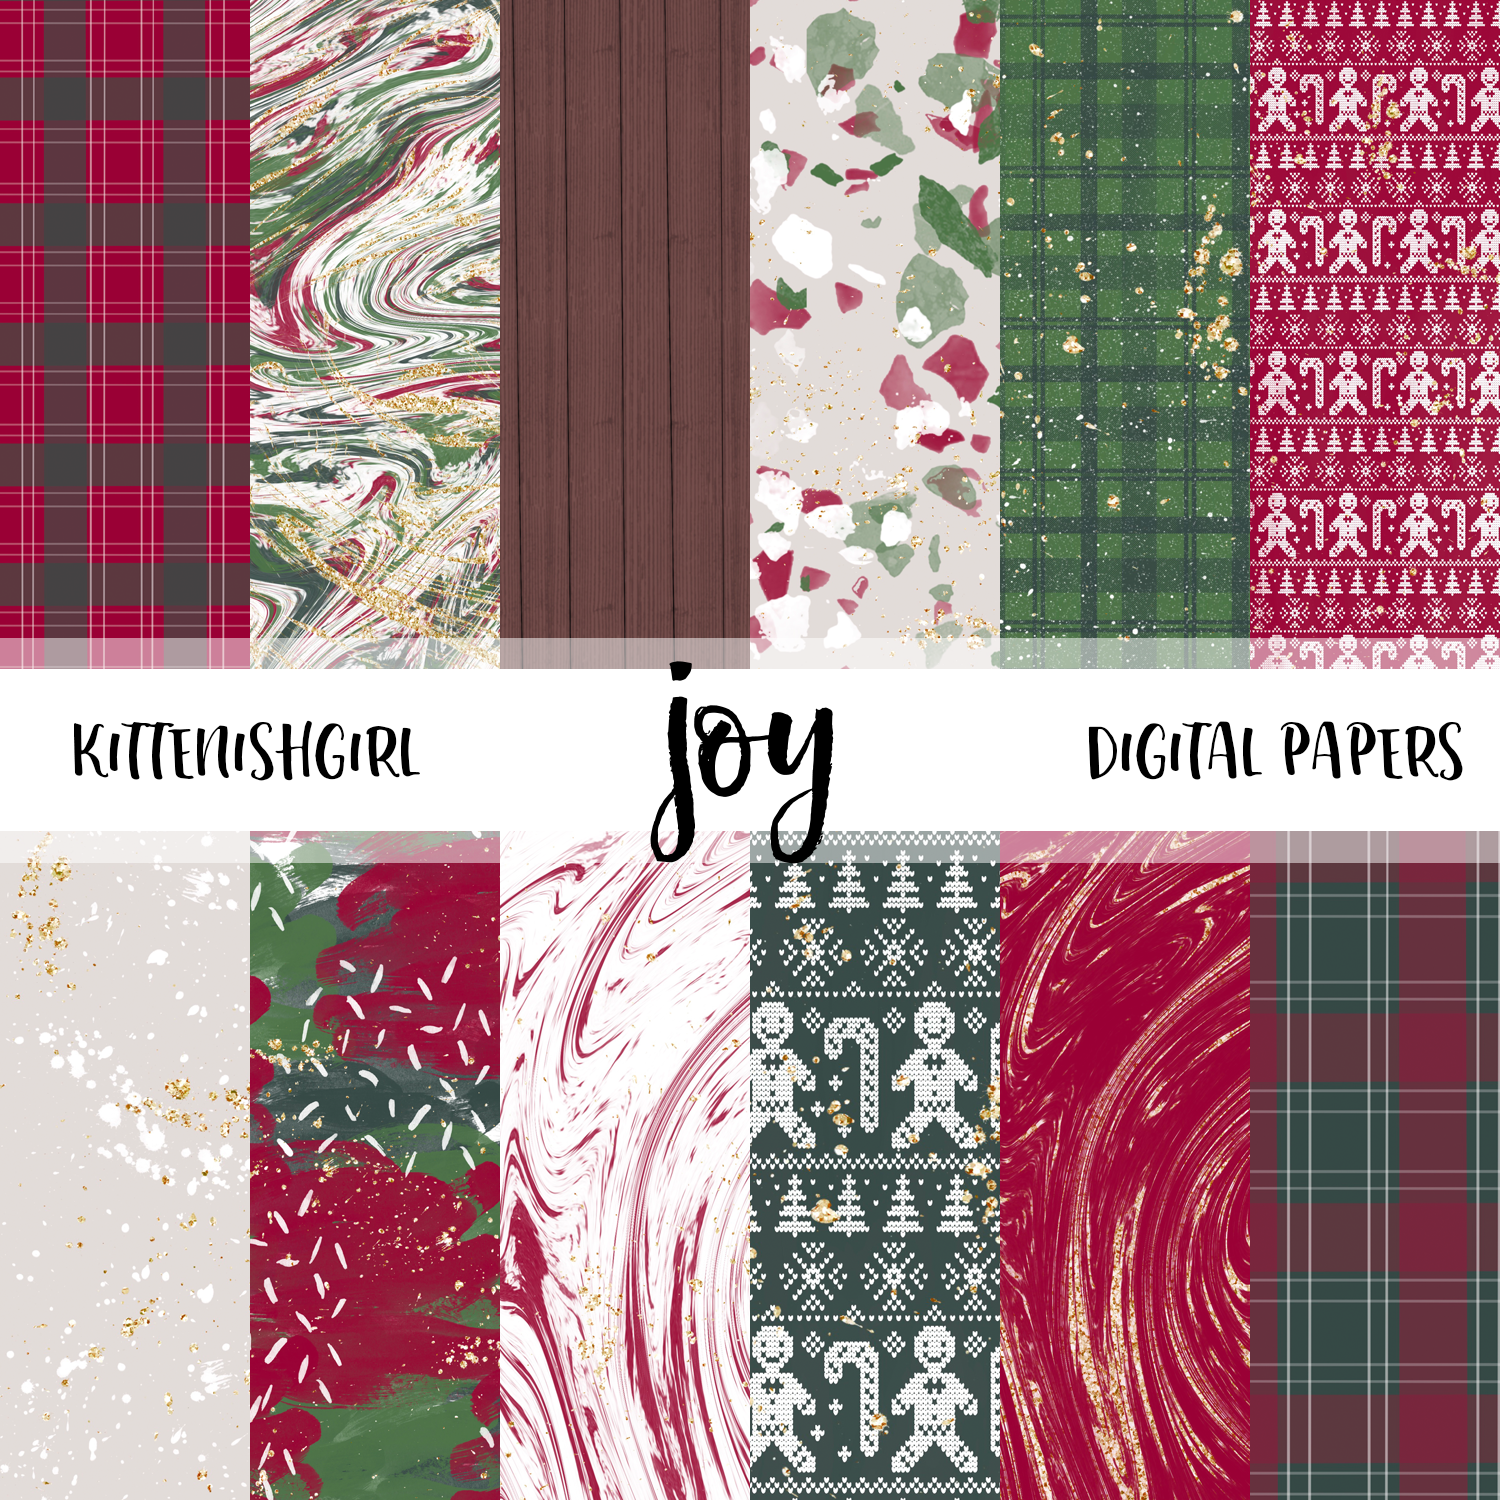 Joy // Digital Papers